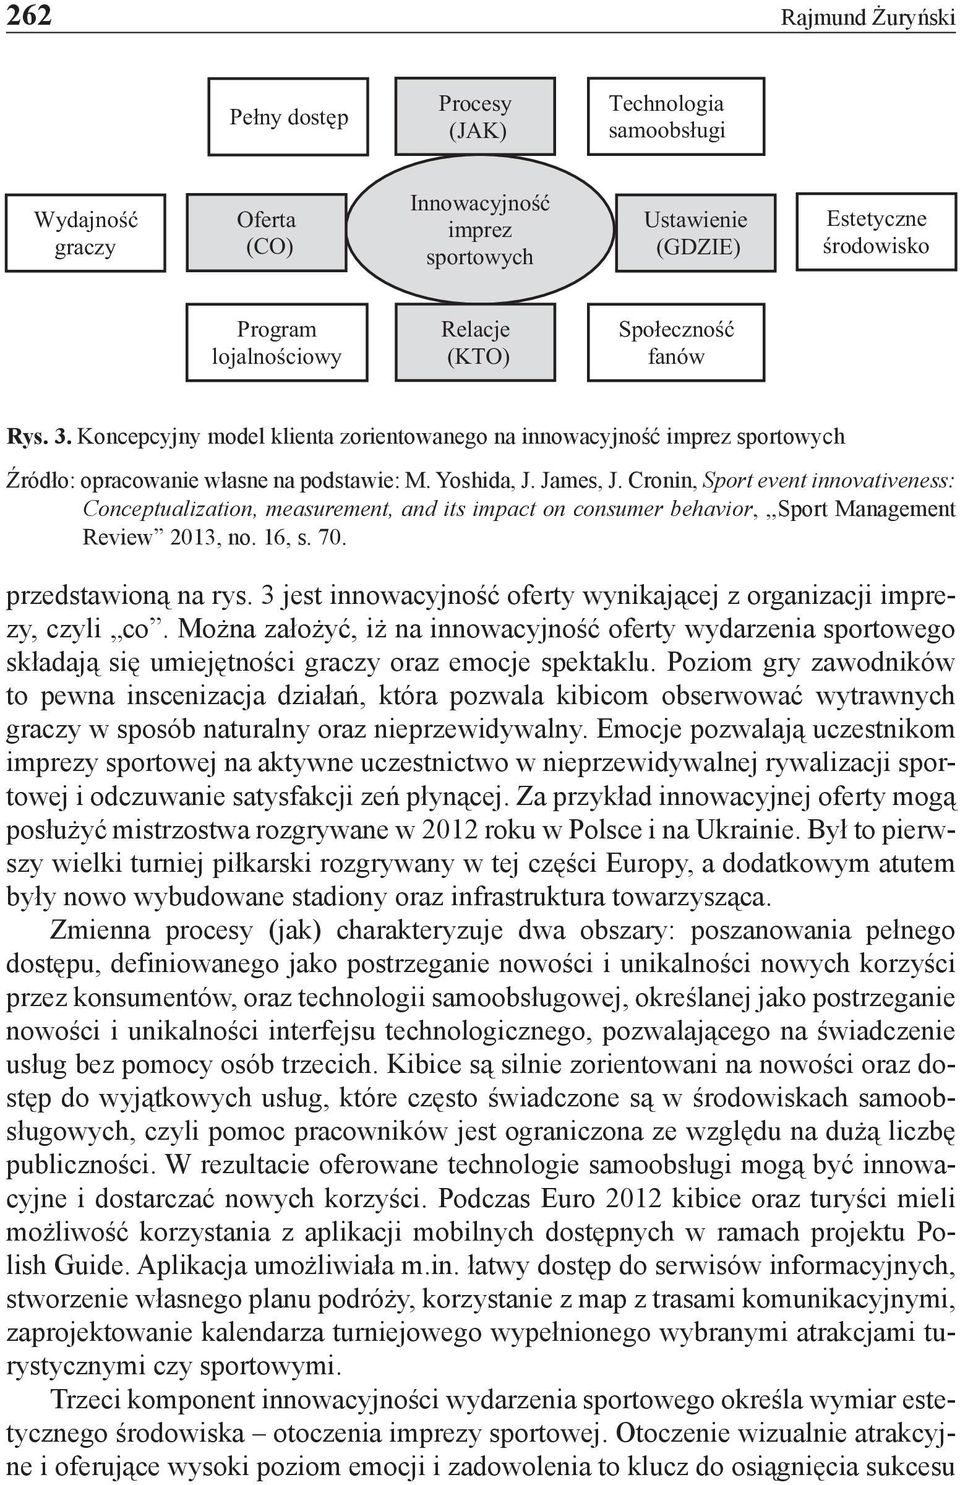 Cronin, Sport event innovativeness: Conceptualization, measurement, and its impact on consumer behavior,,,sport Management Review 2013, no. 16, s. 70. przedstawioną na rys.